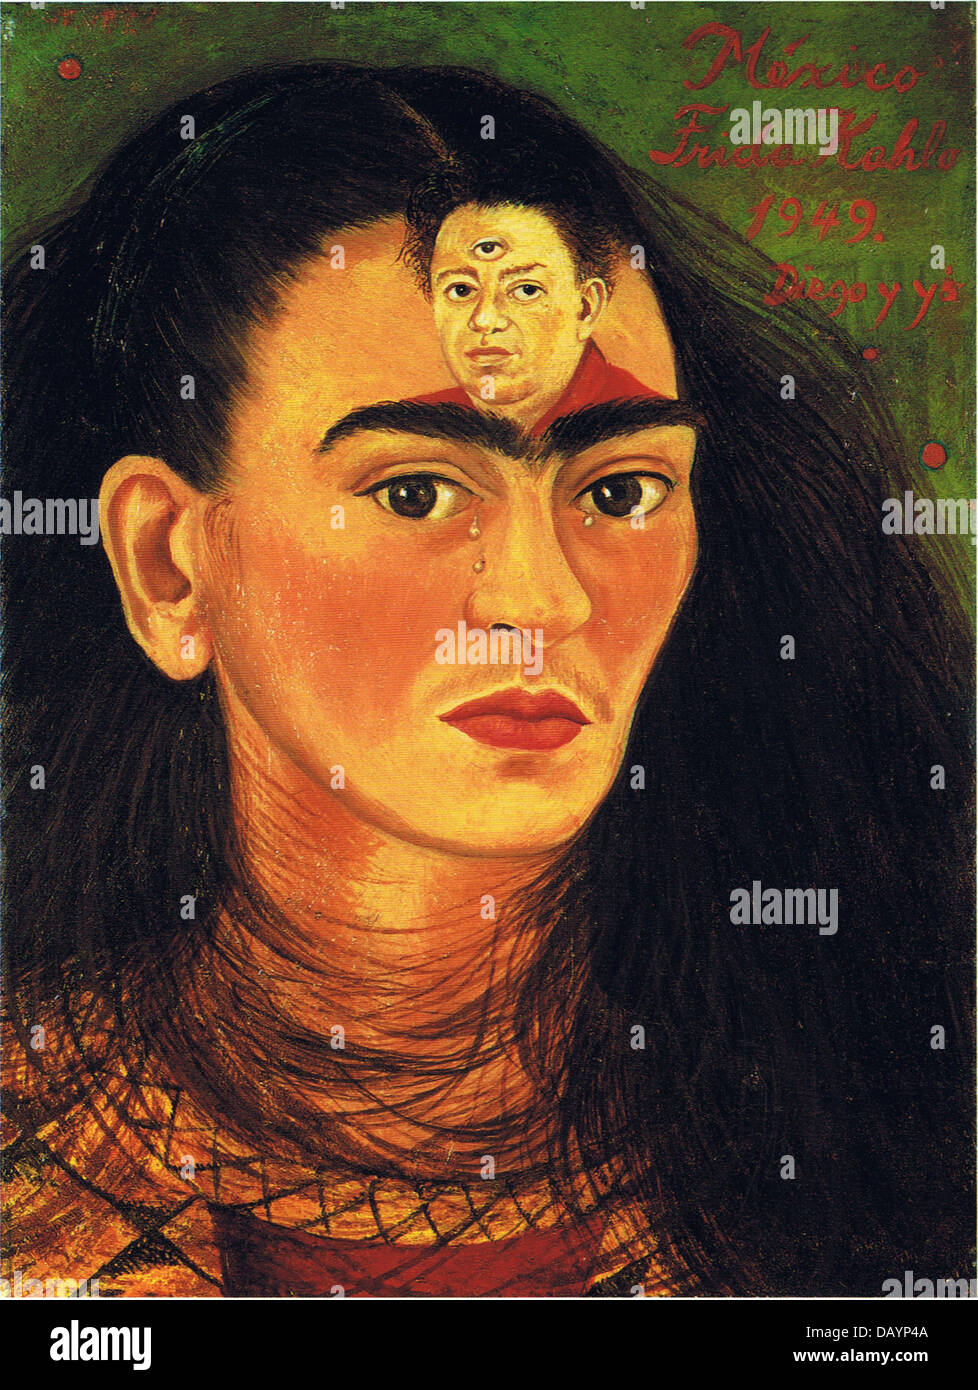 Frida Kahlo Self-portrait : Diego y yo 1949 - Stock Image